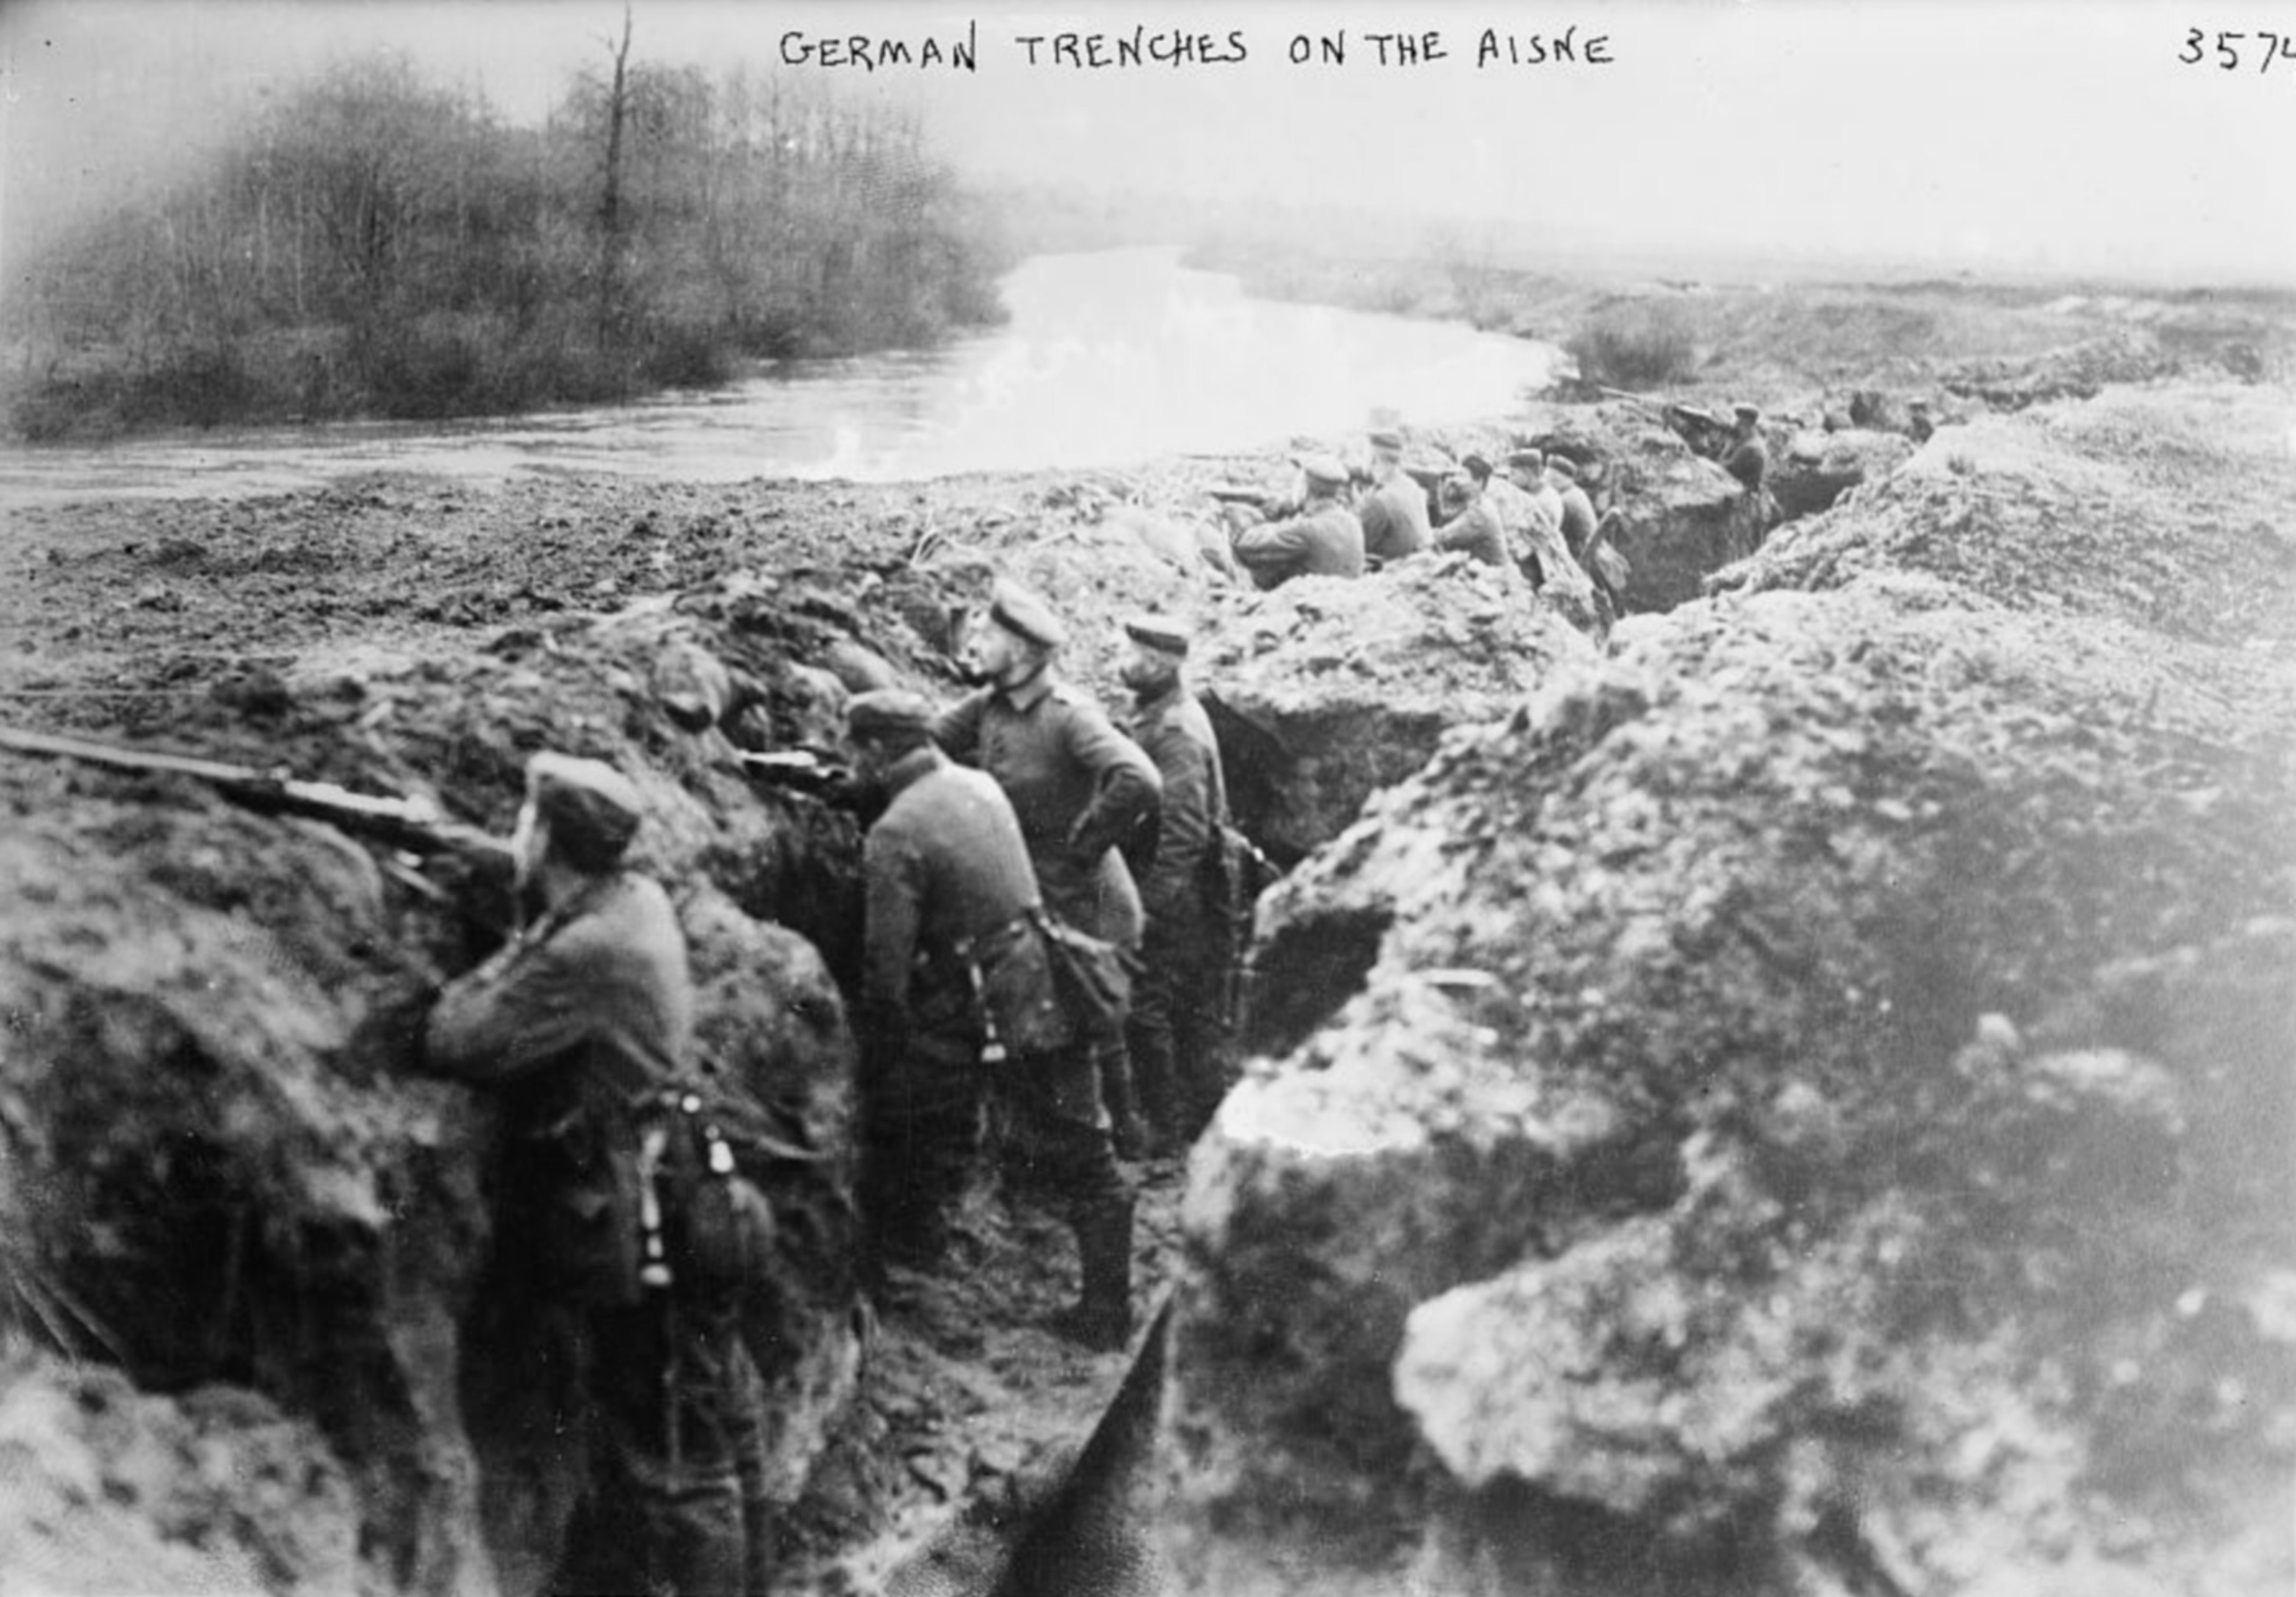 Les tranchées German_trenches_on_the_aisne